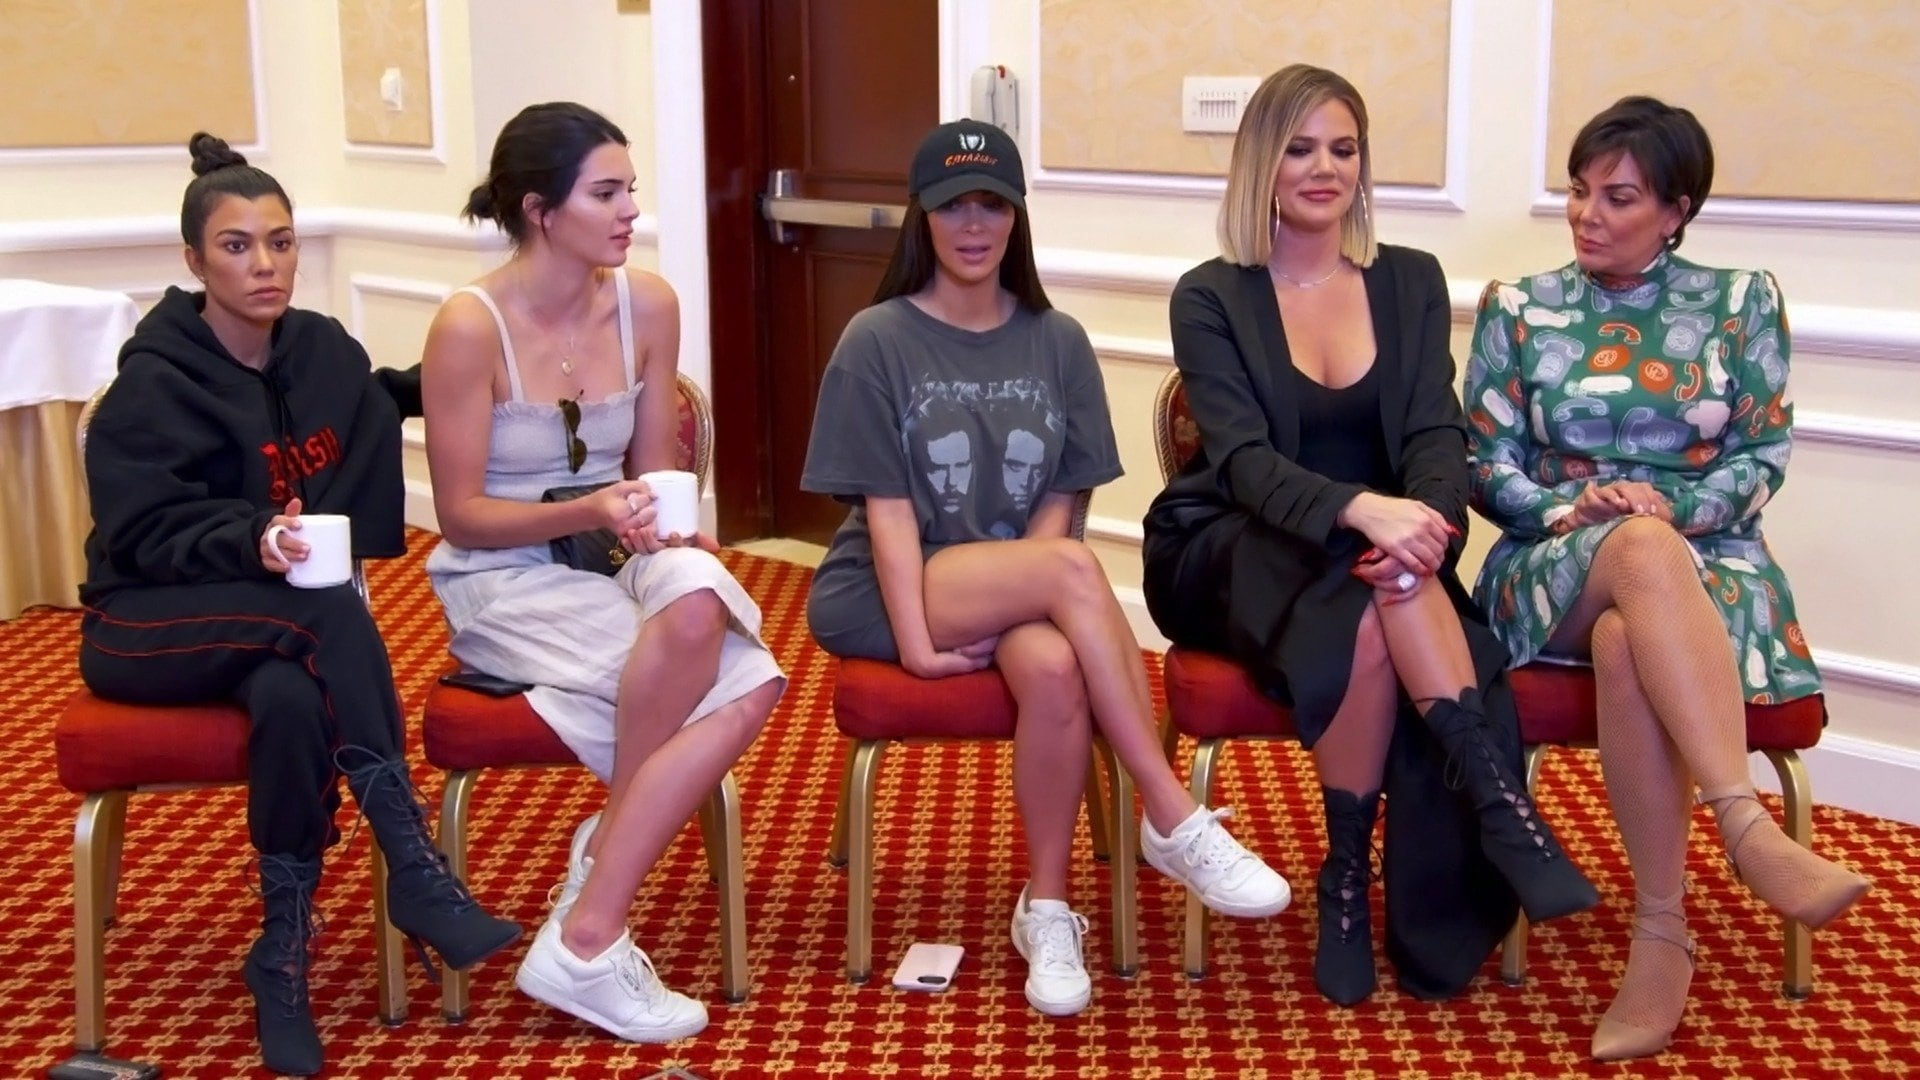 Keeping Up with the Kardashians - Season 14 Episode 11 : Press Pass